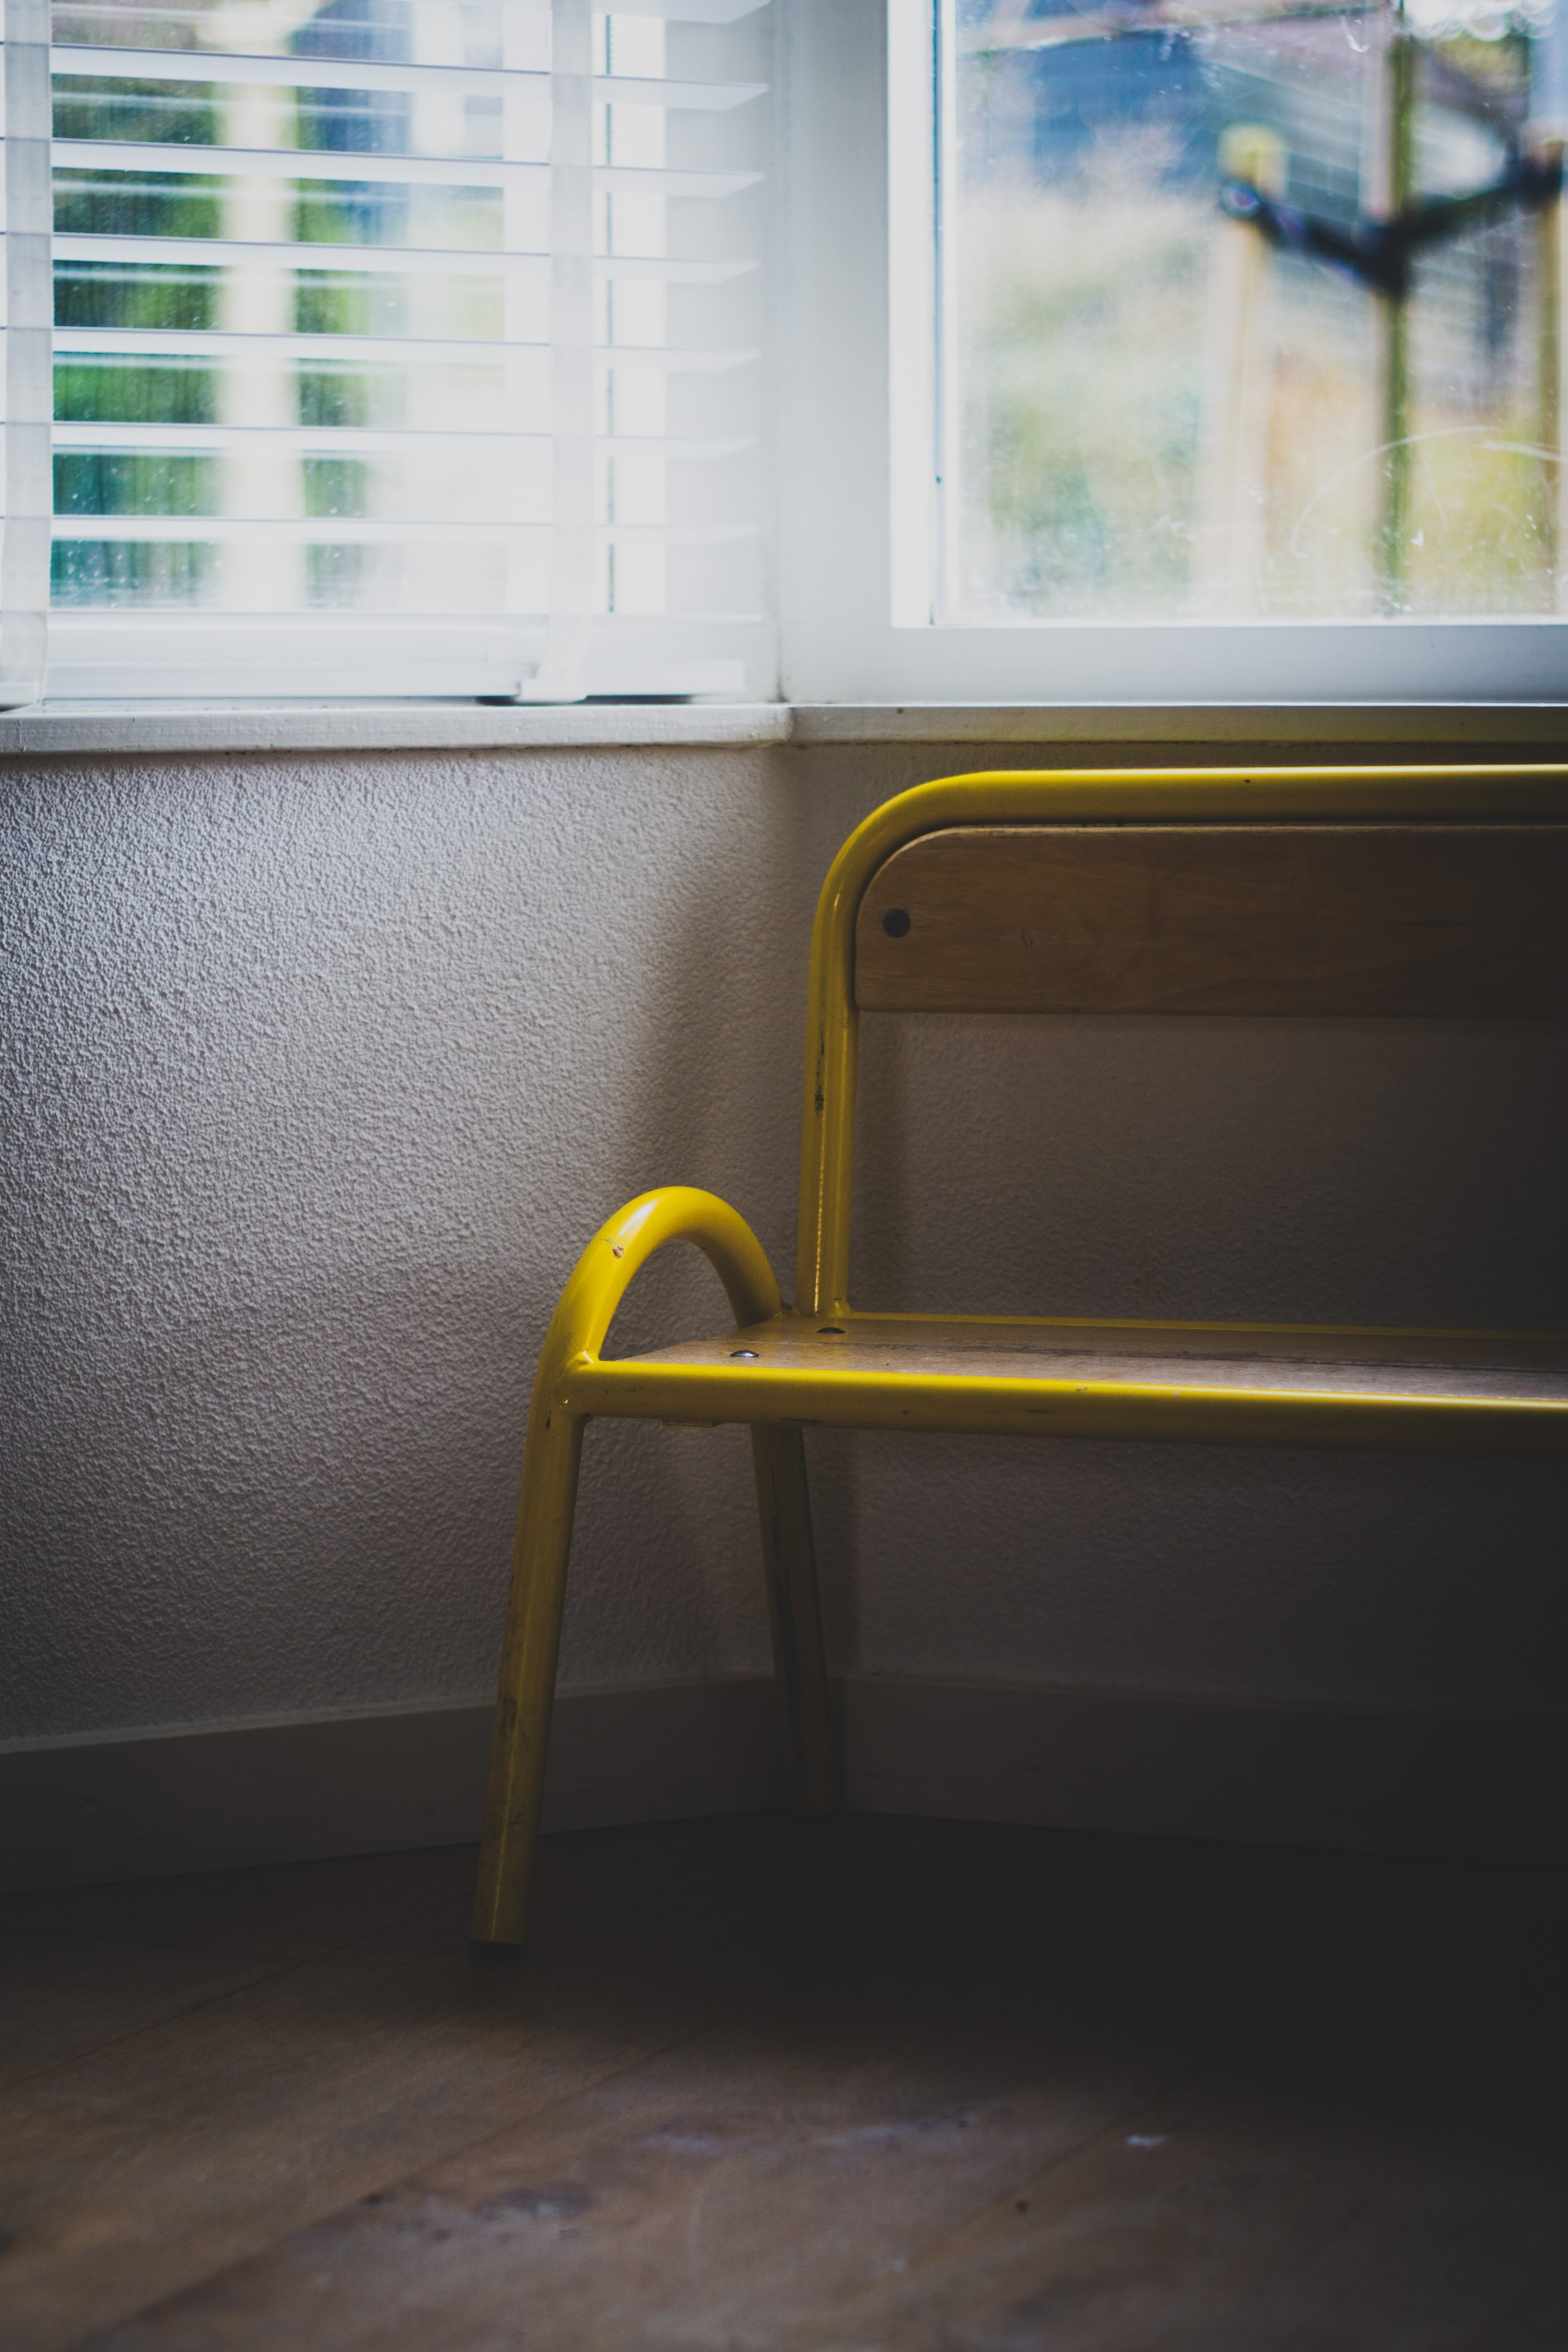 Moody image of a yellow kid chair in the living room